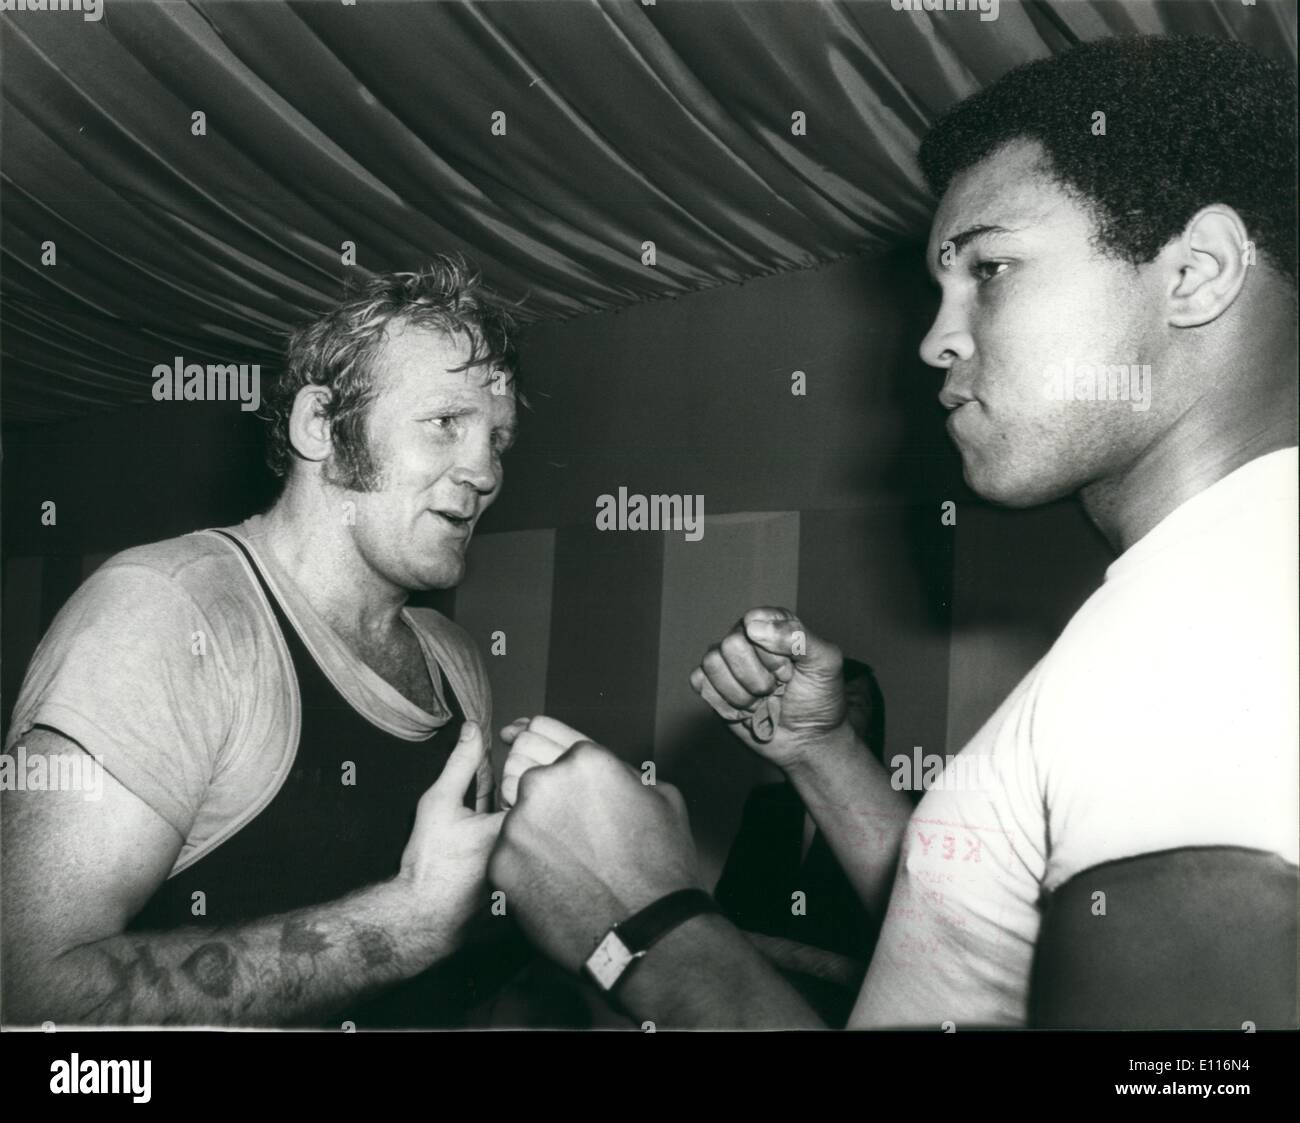 Mar. 03, 1976 - Muhammad Ali seen in the ring with Richard Dunn the British Heavy weight Champion during his visit to the gym at Quagline's today. - Stock Image